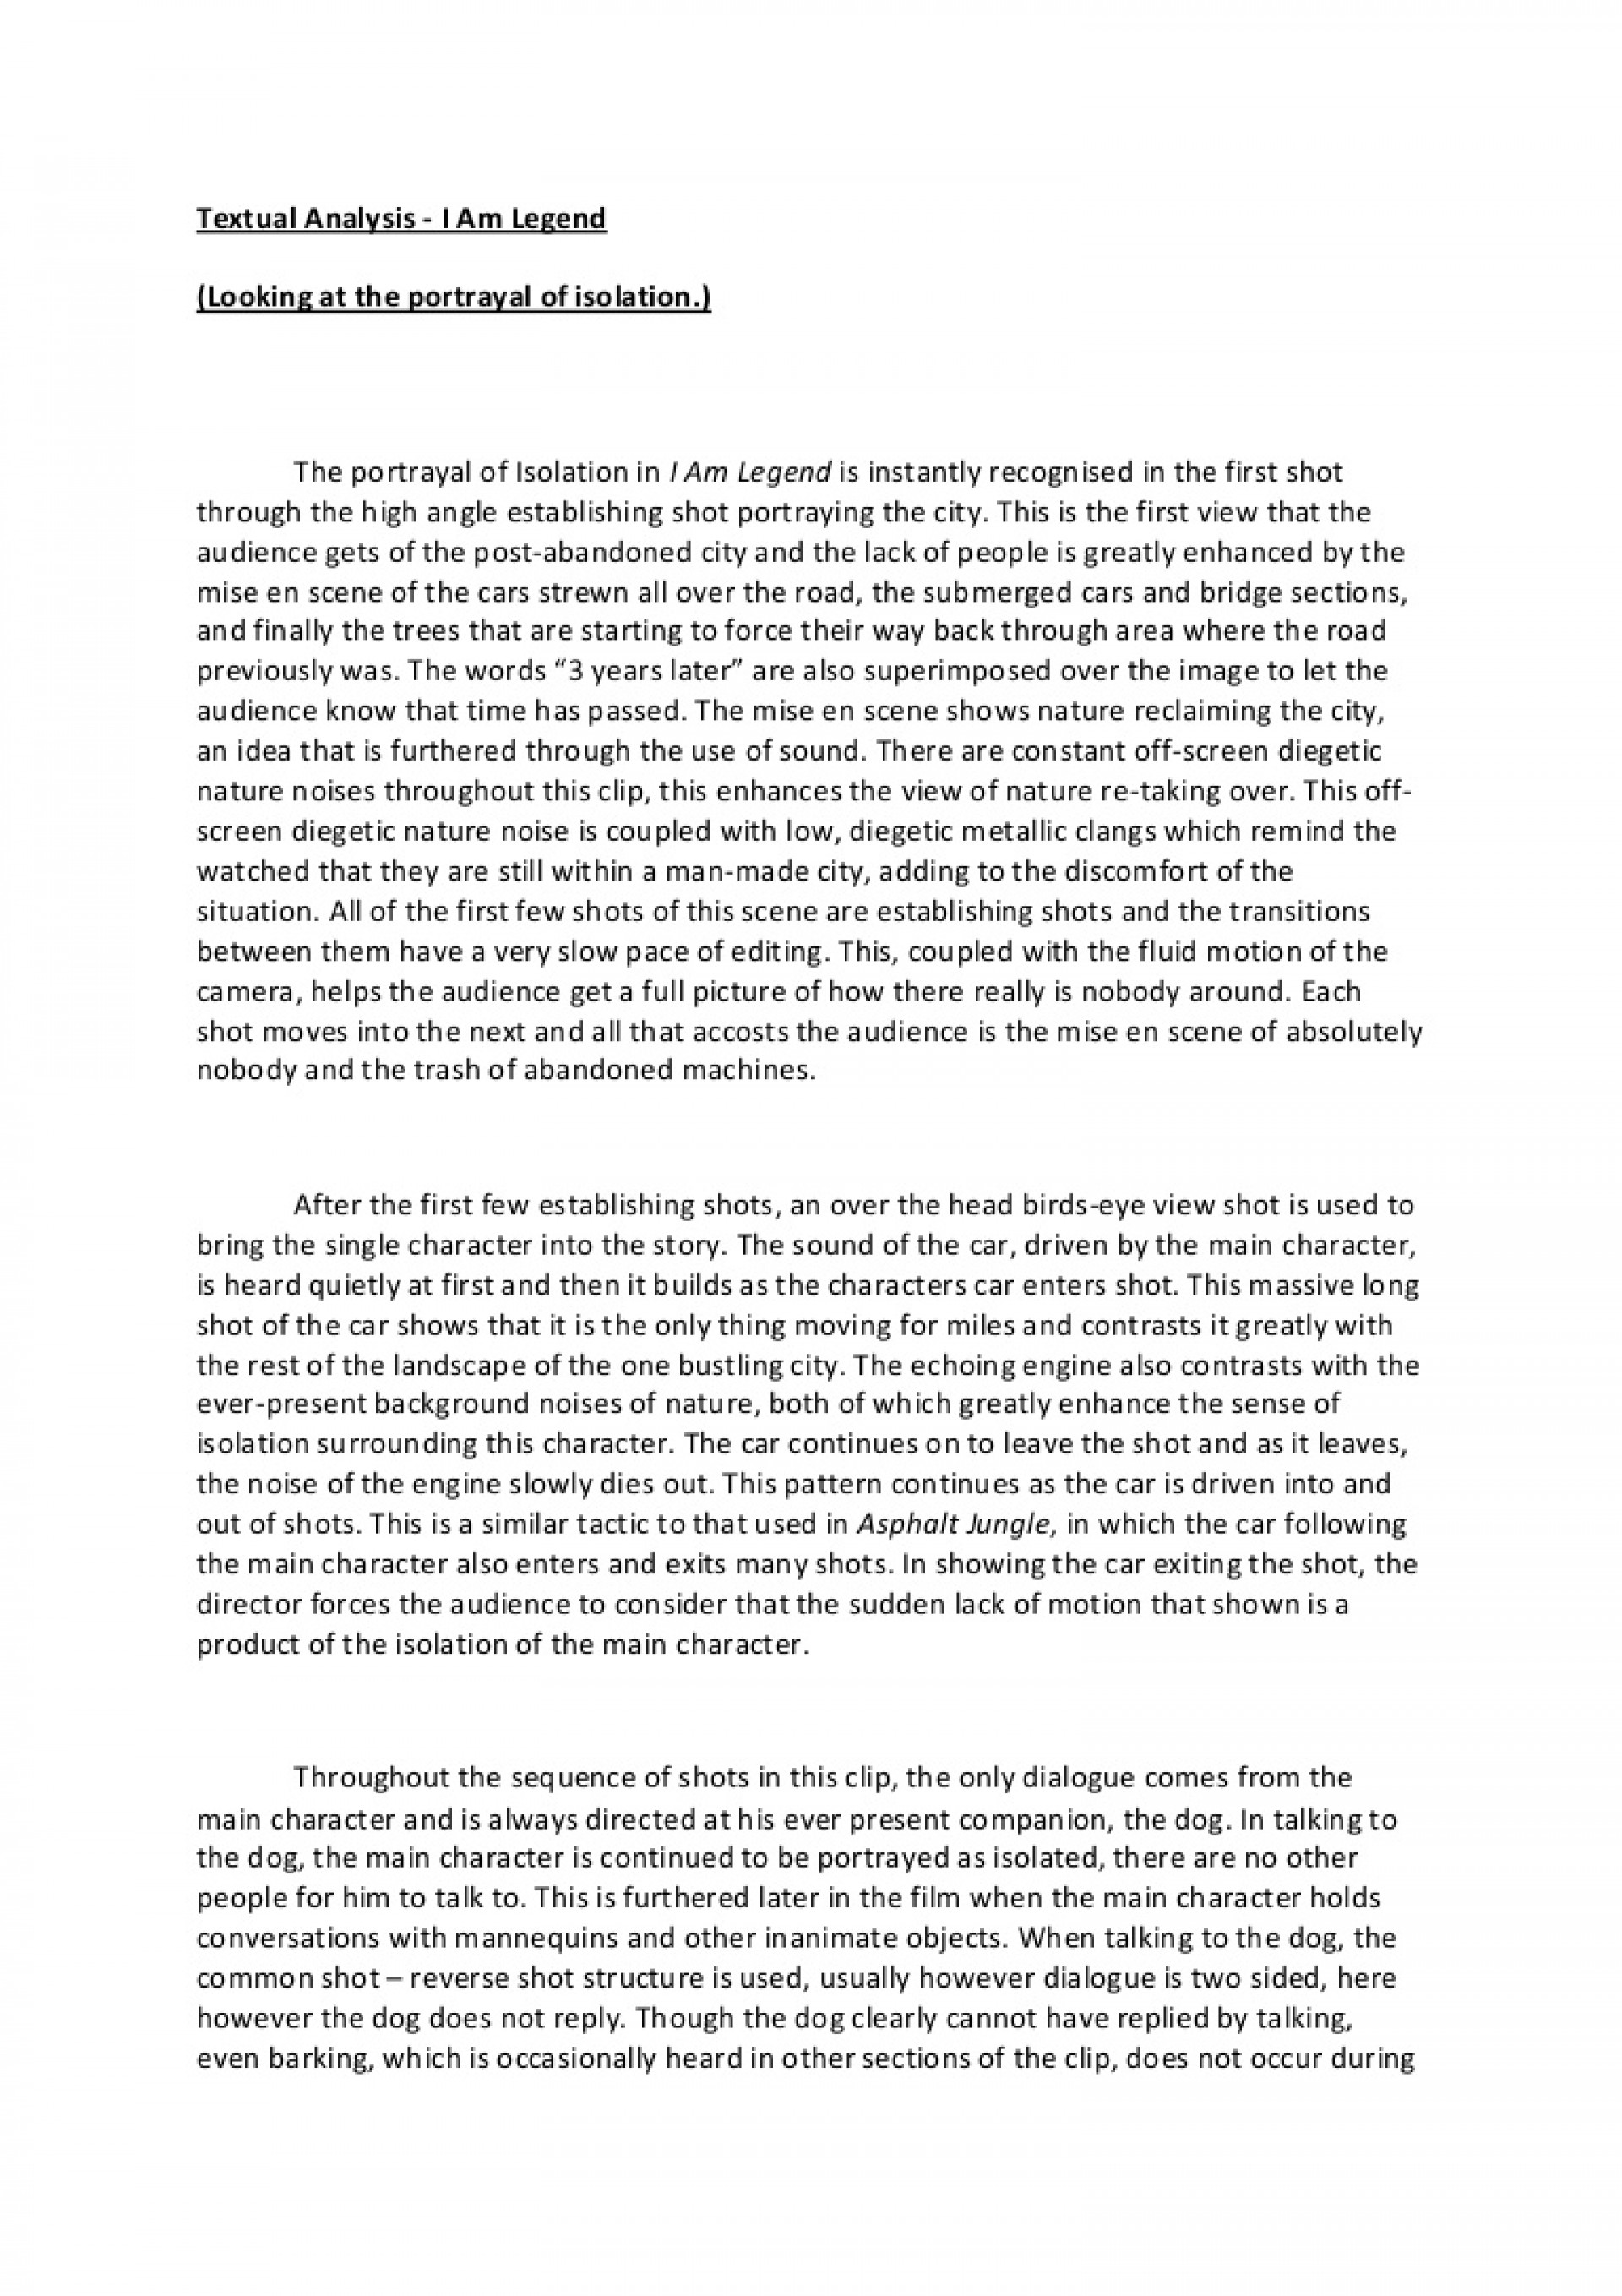 007 Atextualanalysisofiamlegend Phpapp02 Thumbnail Essay Of Who Am I Awesome As A Person Filipino Writing Aim In Life 1920